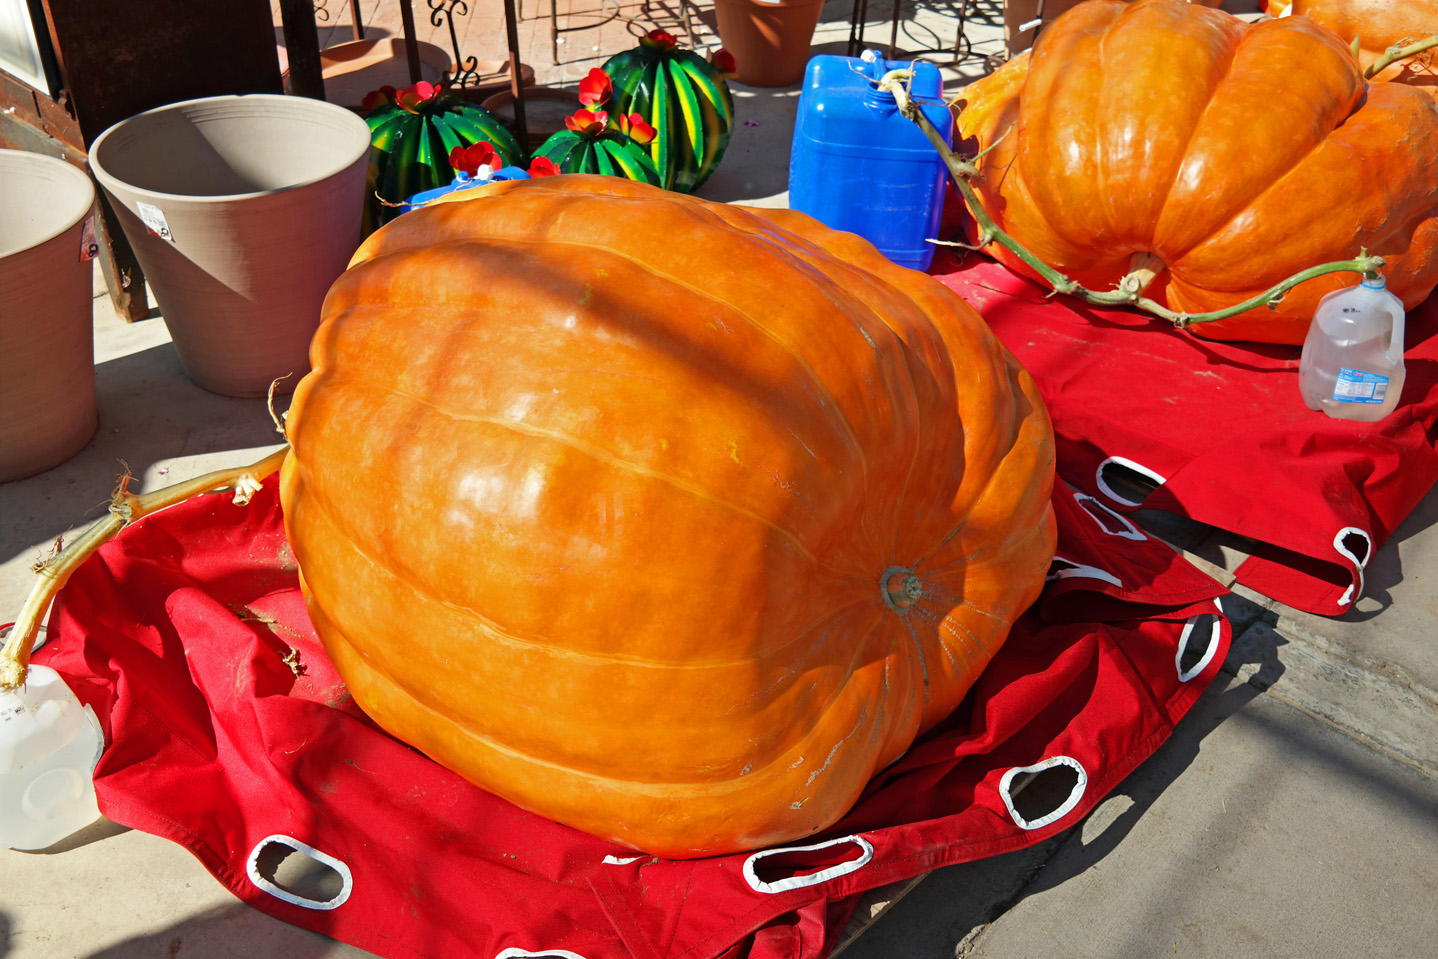 Arizona's Giant Pumpkins - 410 pounds!